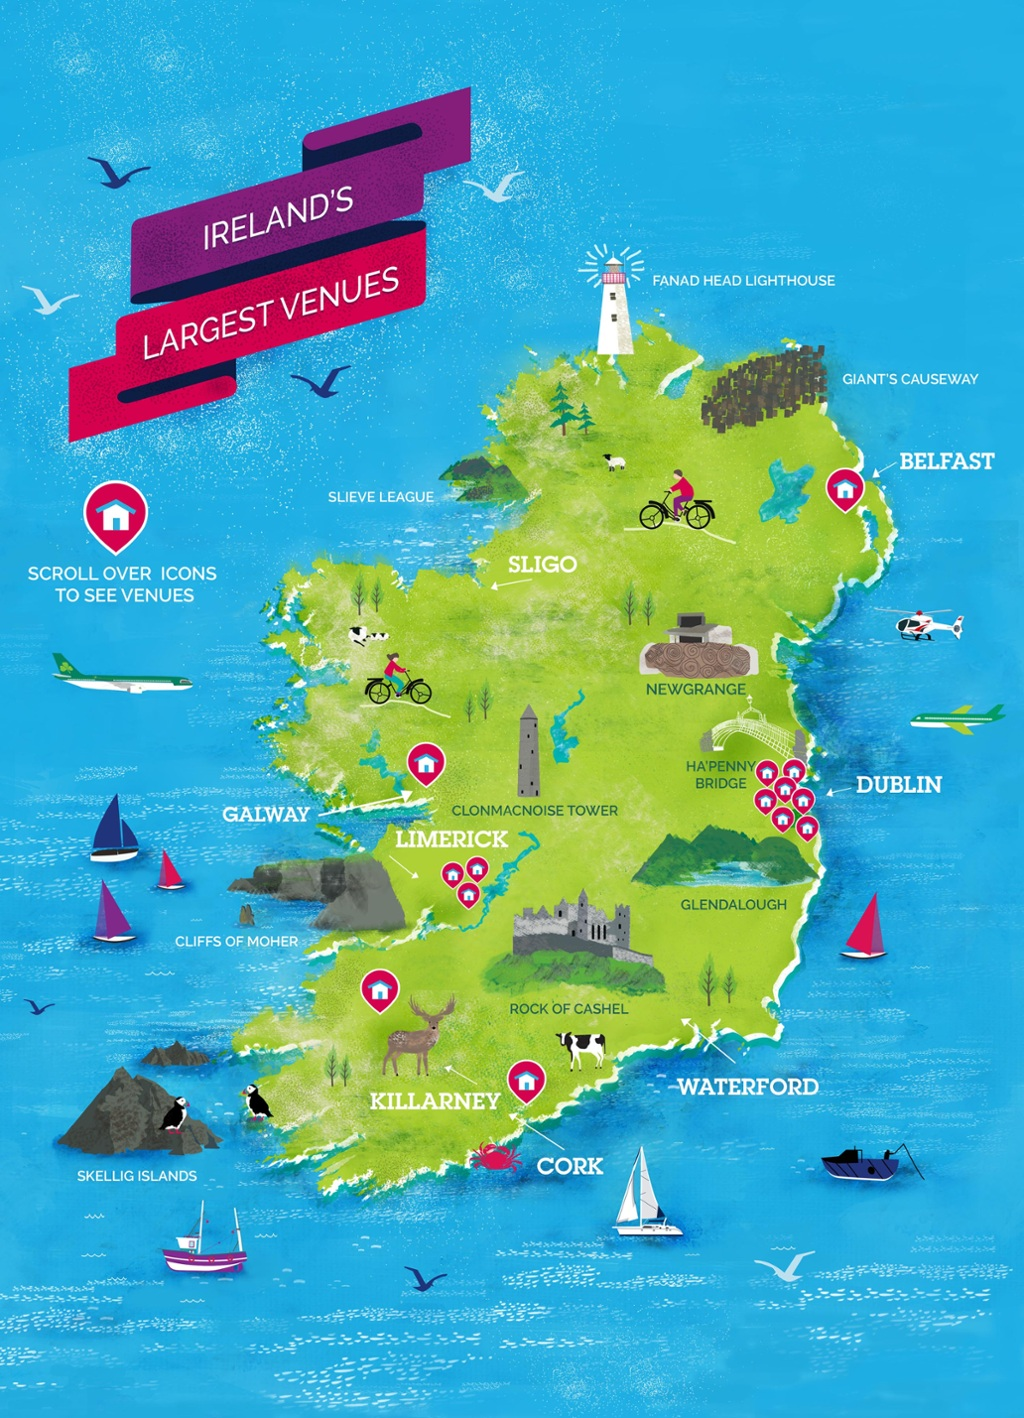 Ireland's Largest Venues Map